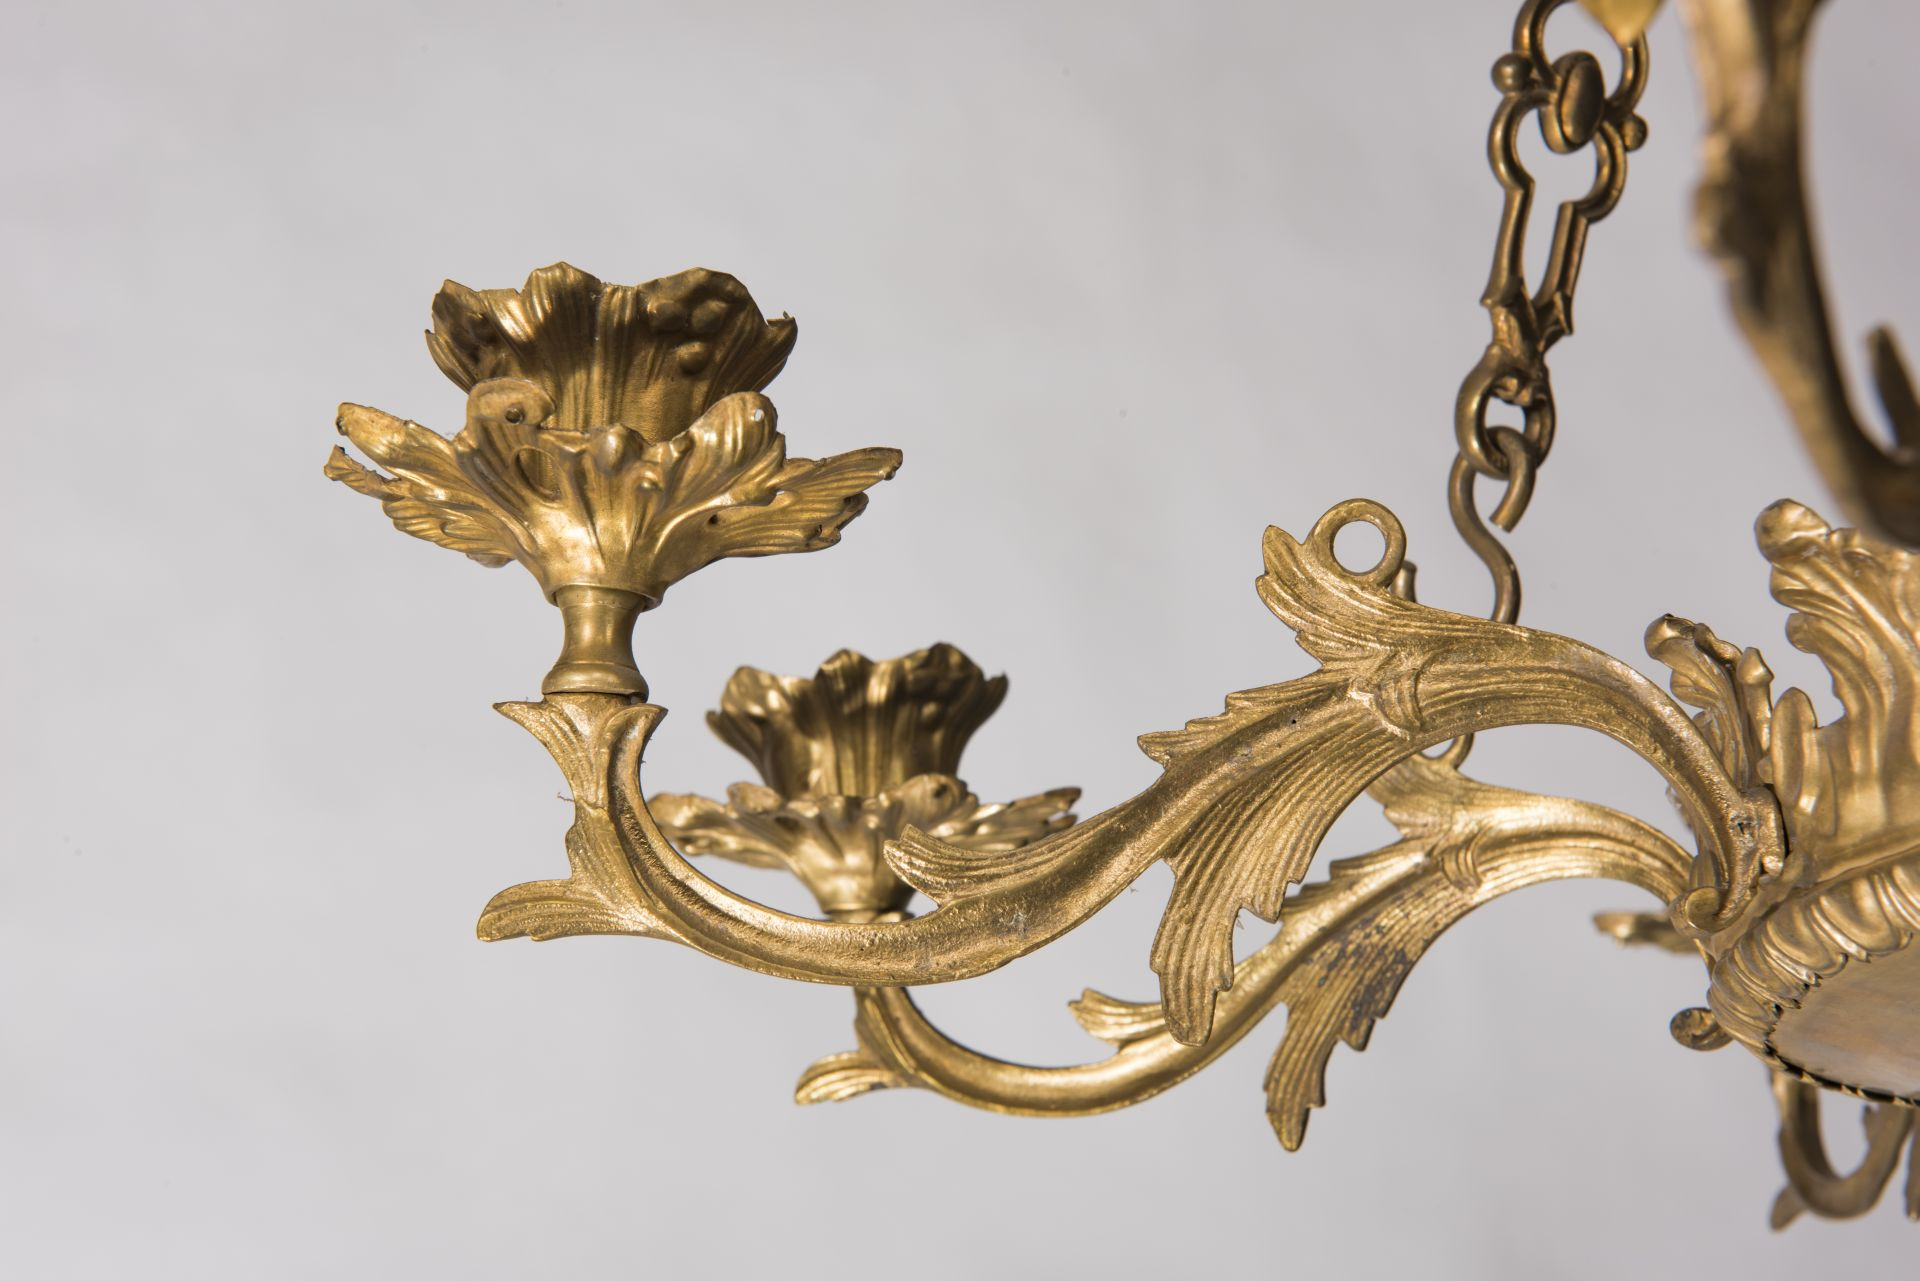 Fragment of chandelier, 1887–1912, National Museum of Lithuania, IM-5101. Photo by Kęstutis Stoškus, 2017